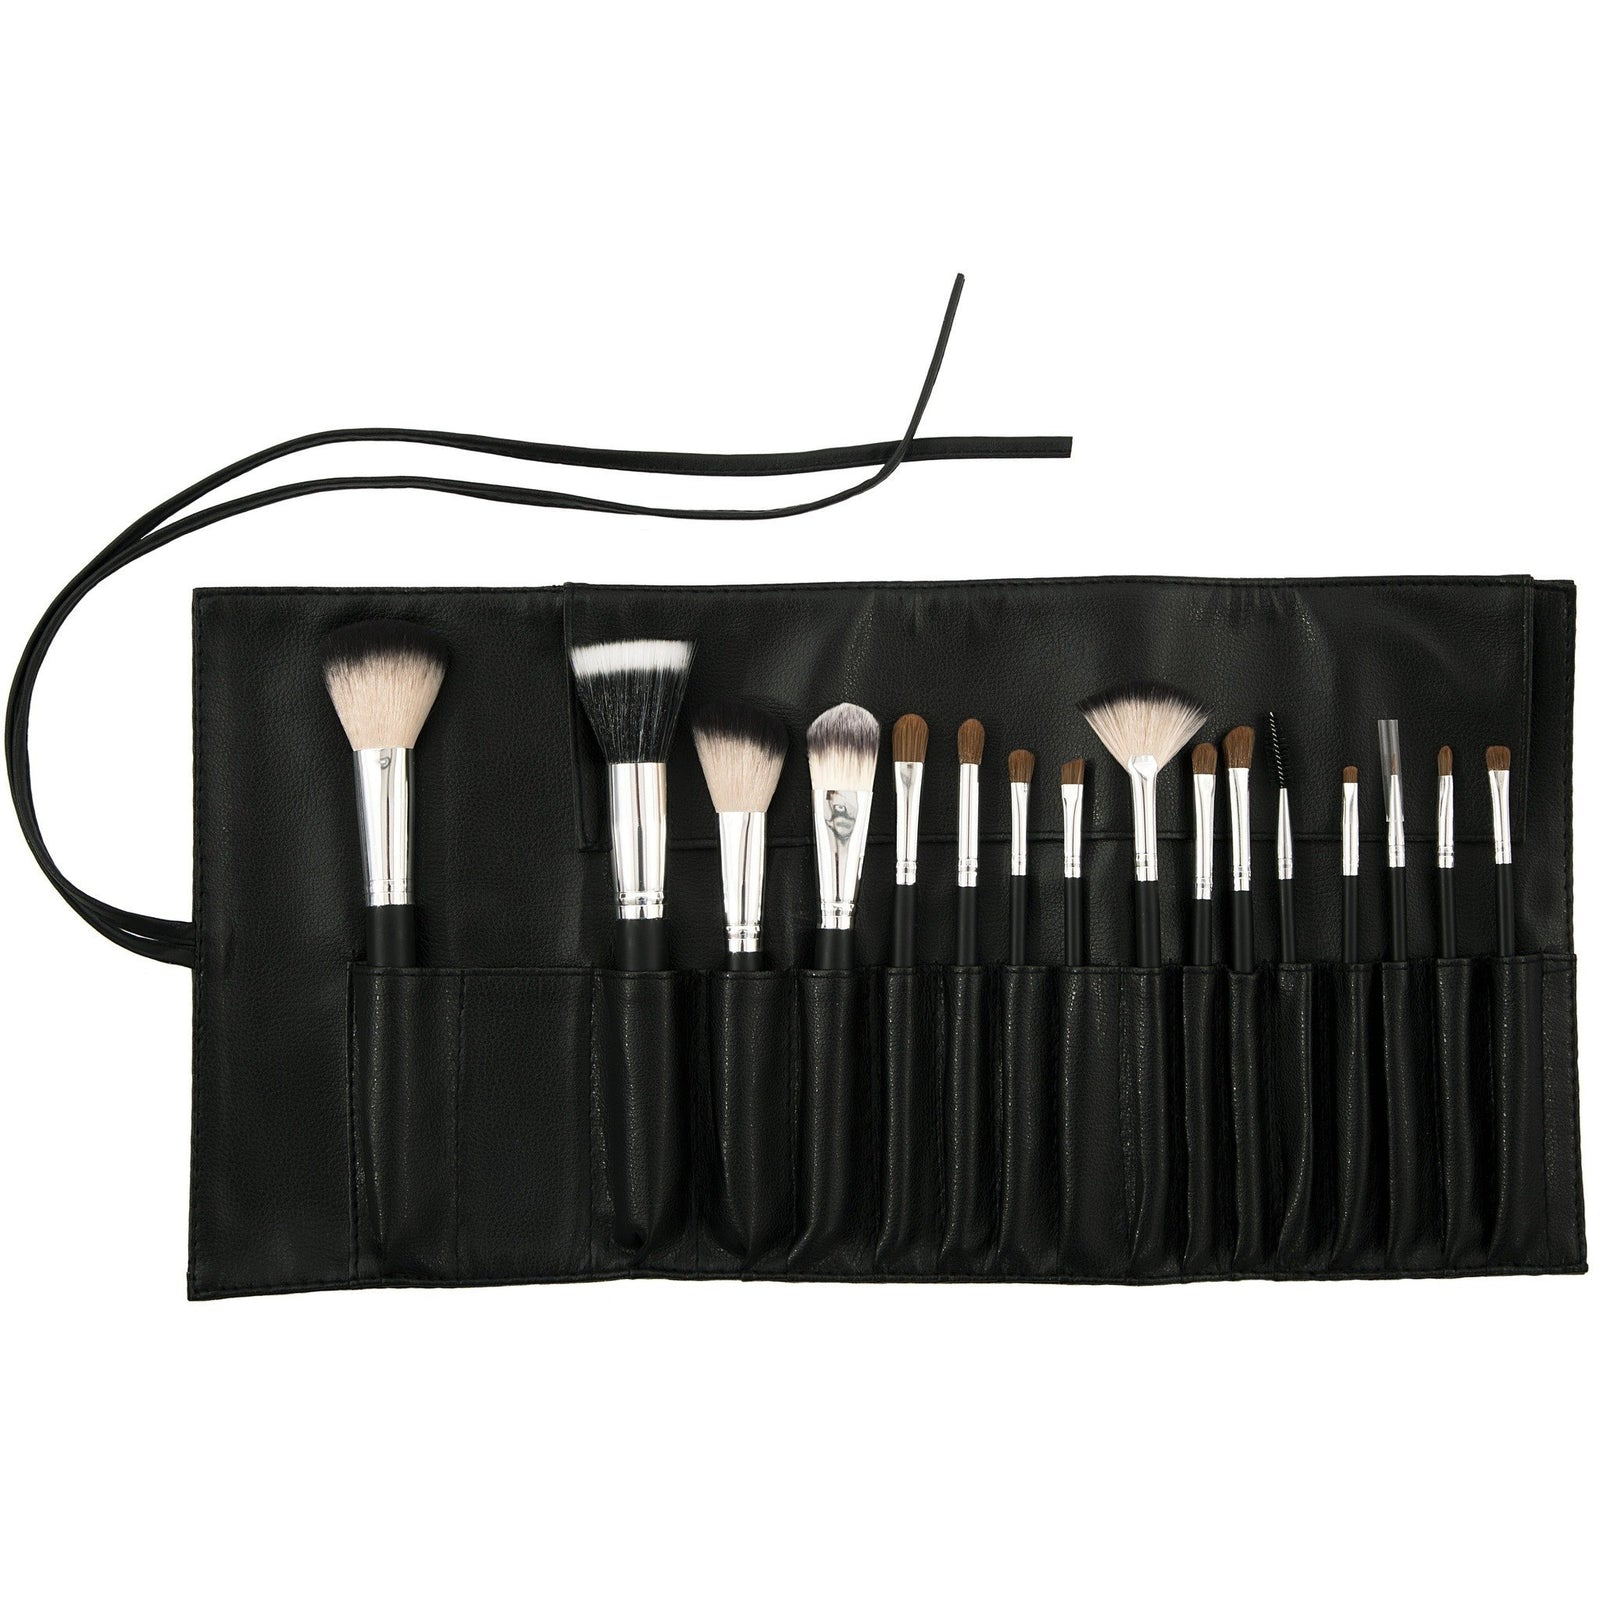 706 Pro Essentials Brush Set - Crownbrush